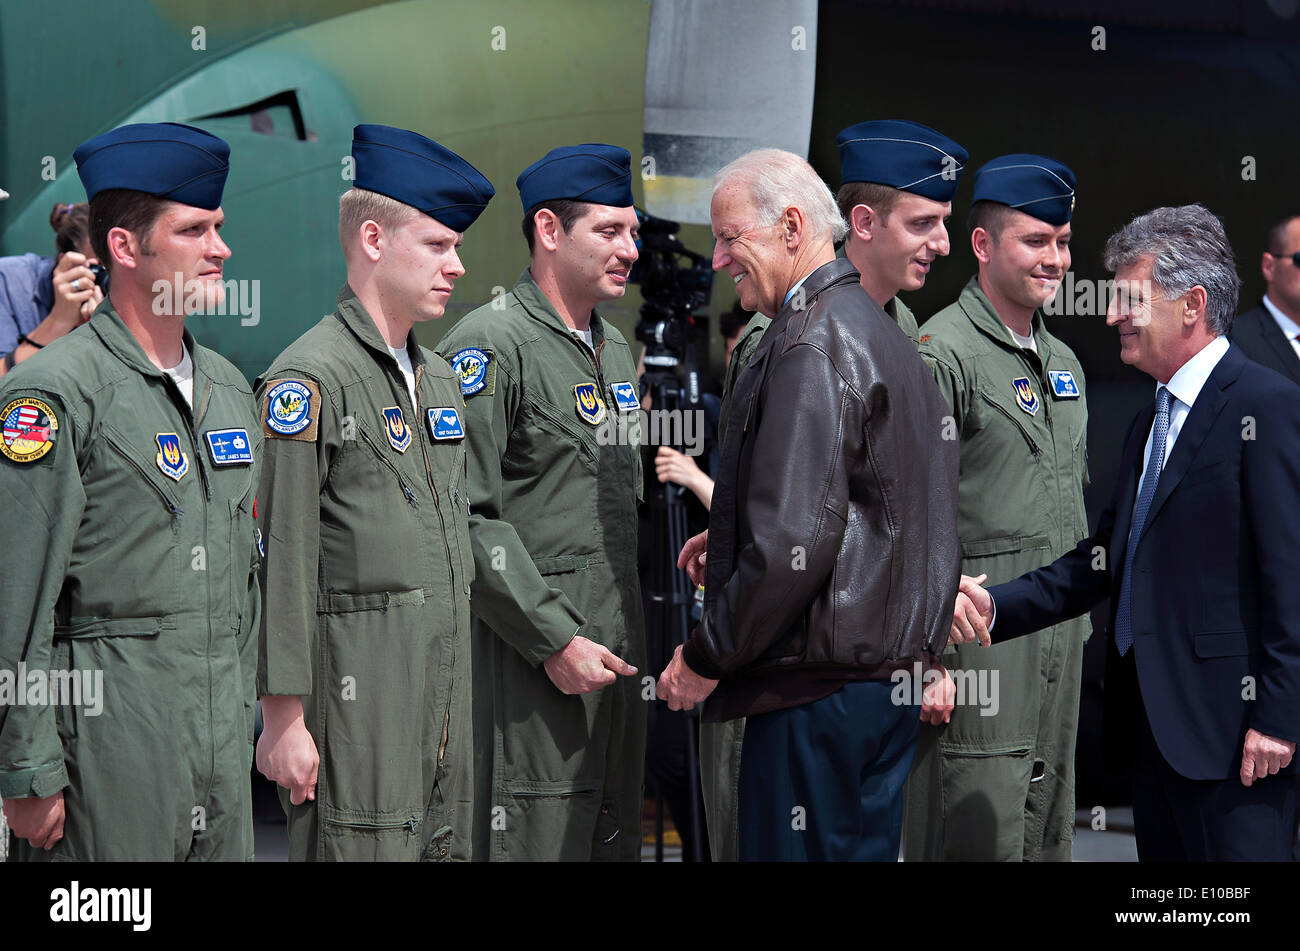 US Vice President Joe Biden meets US Air Force airmen with the 37th Airlift Squadron and the 86th Aircraft Maintenance Squadron May 20, 2014 in Bucharest, Romania. Biden is in Romania to reassure allies of the US commitment to the region. - Stock Image